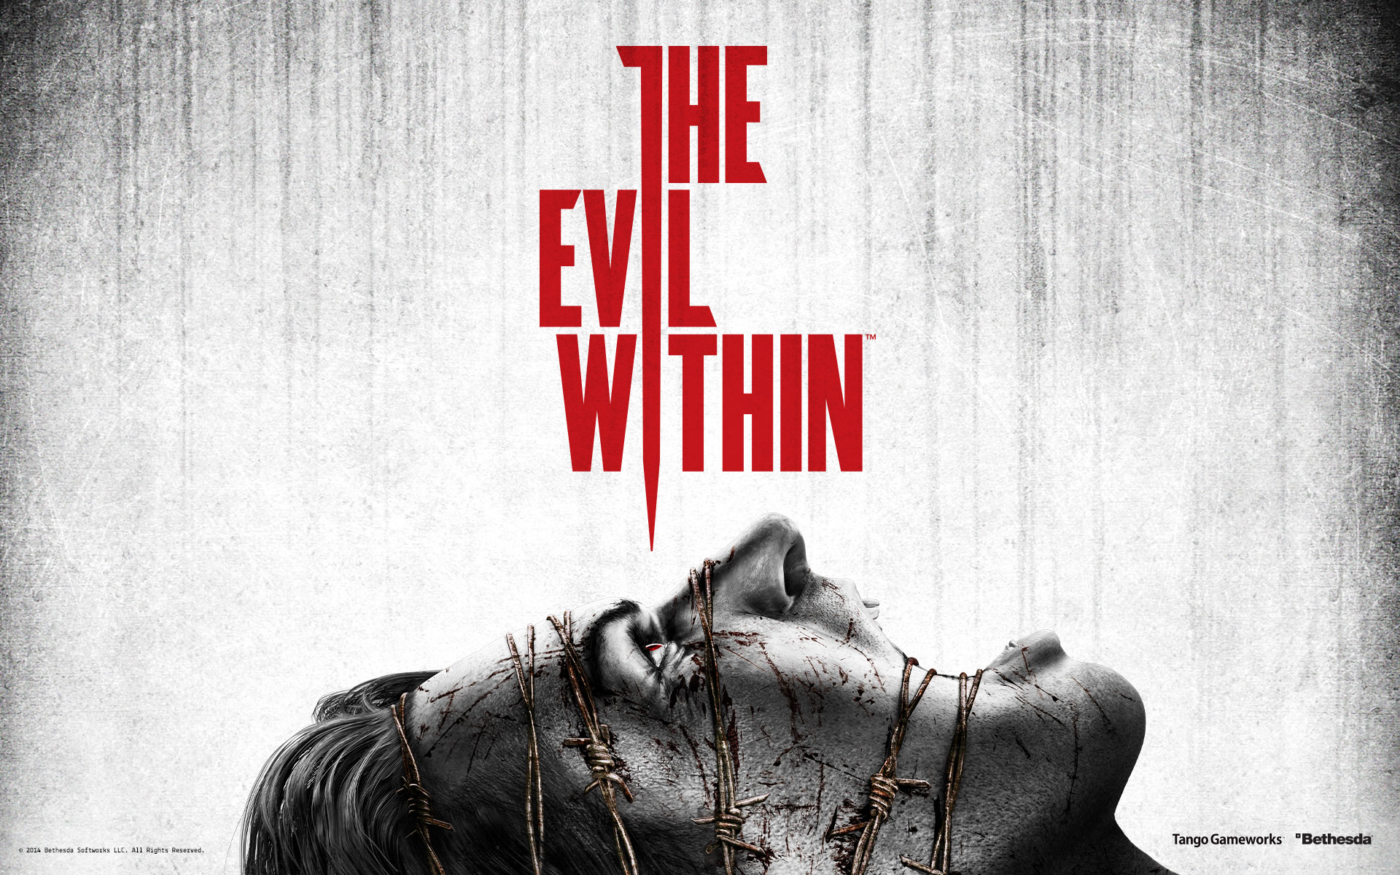 Novo Trailer Oficial de The Evil Within 2 – O Fotógrafo Perverso e Mortal